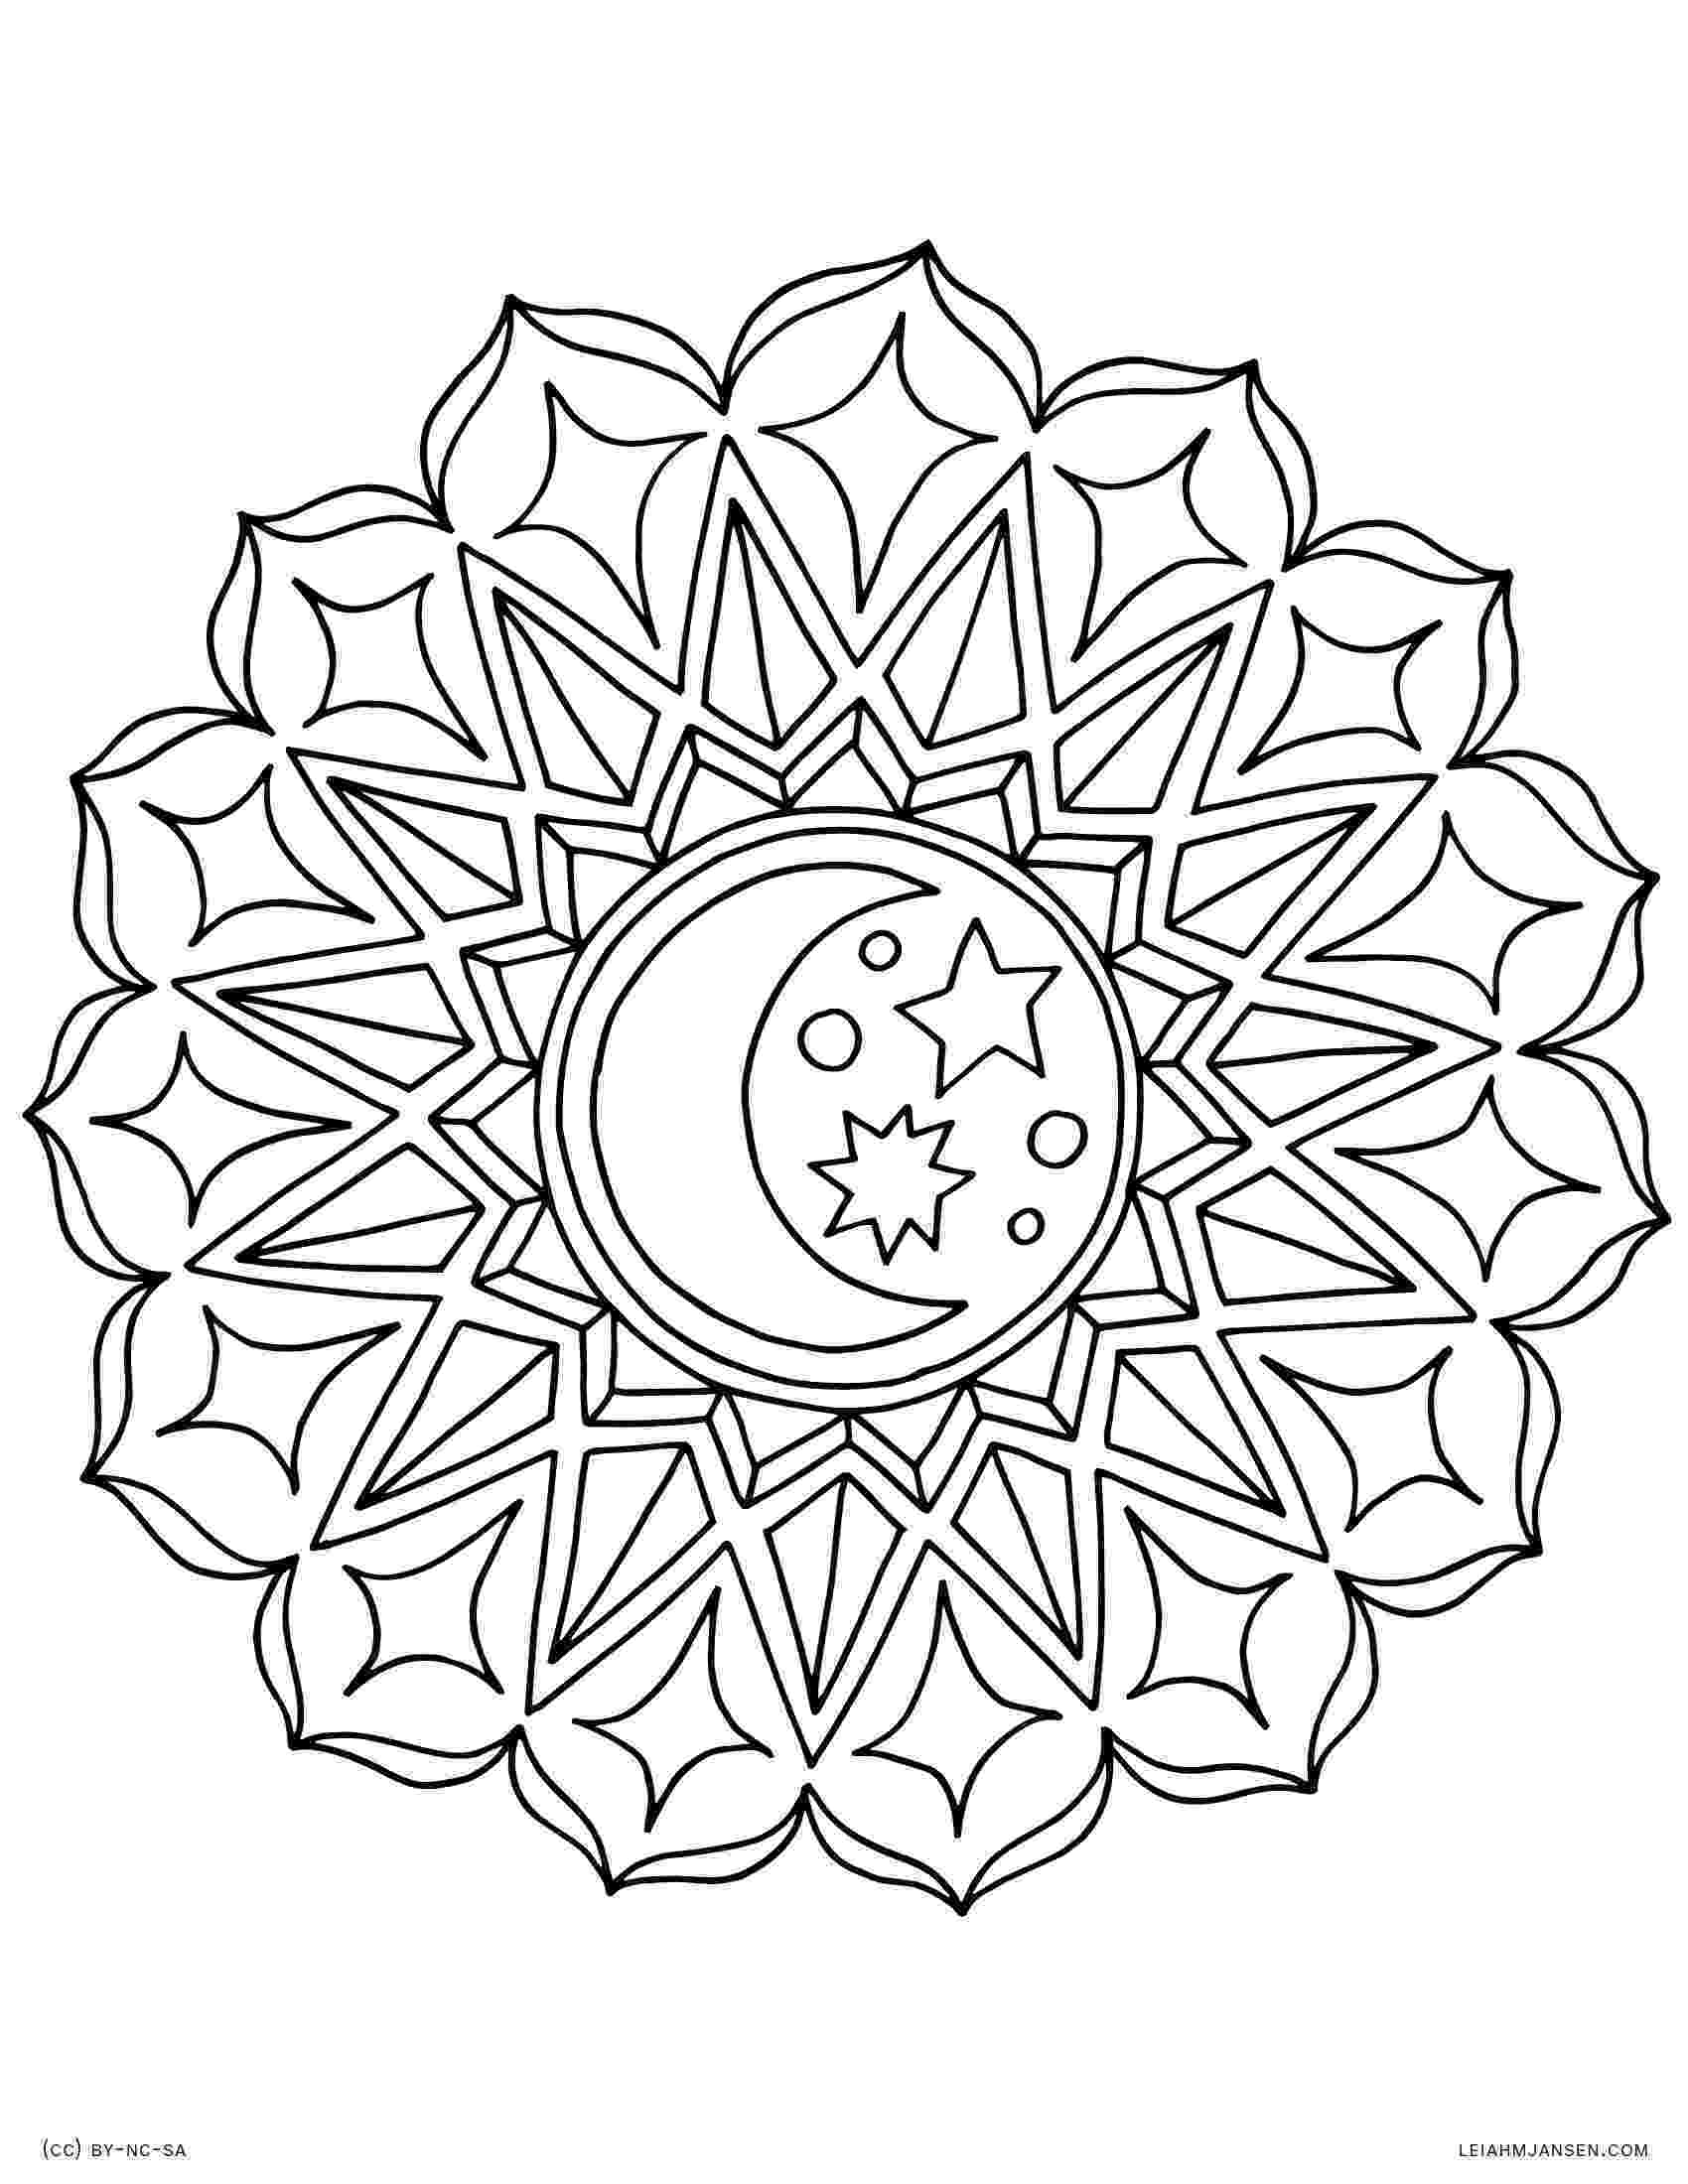 mandala color top 25 mandala coloring pages for your little ones mandala color